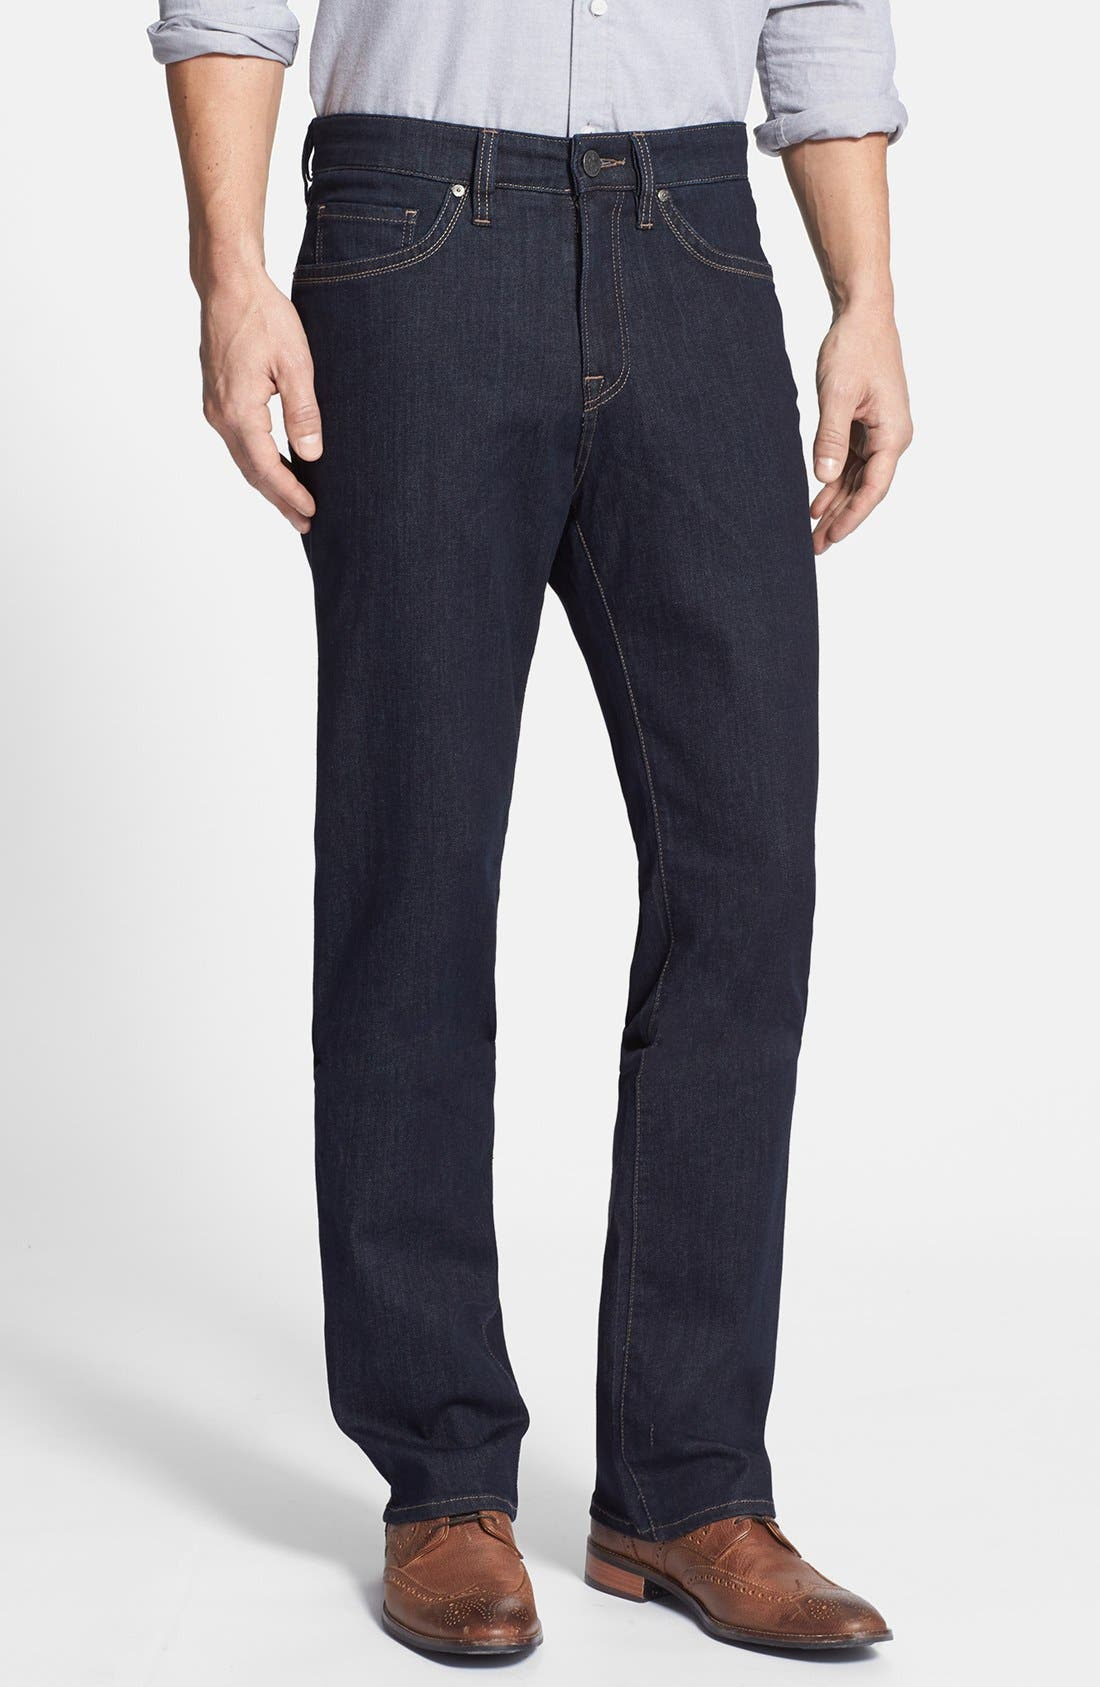 Main Image - 34 Heritage 'Charisma' Classic Relaxed Fit Jeans (Midnight Cashmere) (Regular & Tall)